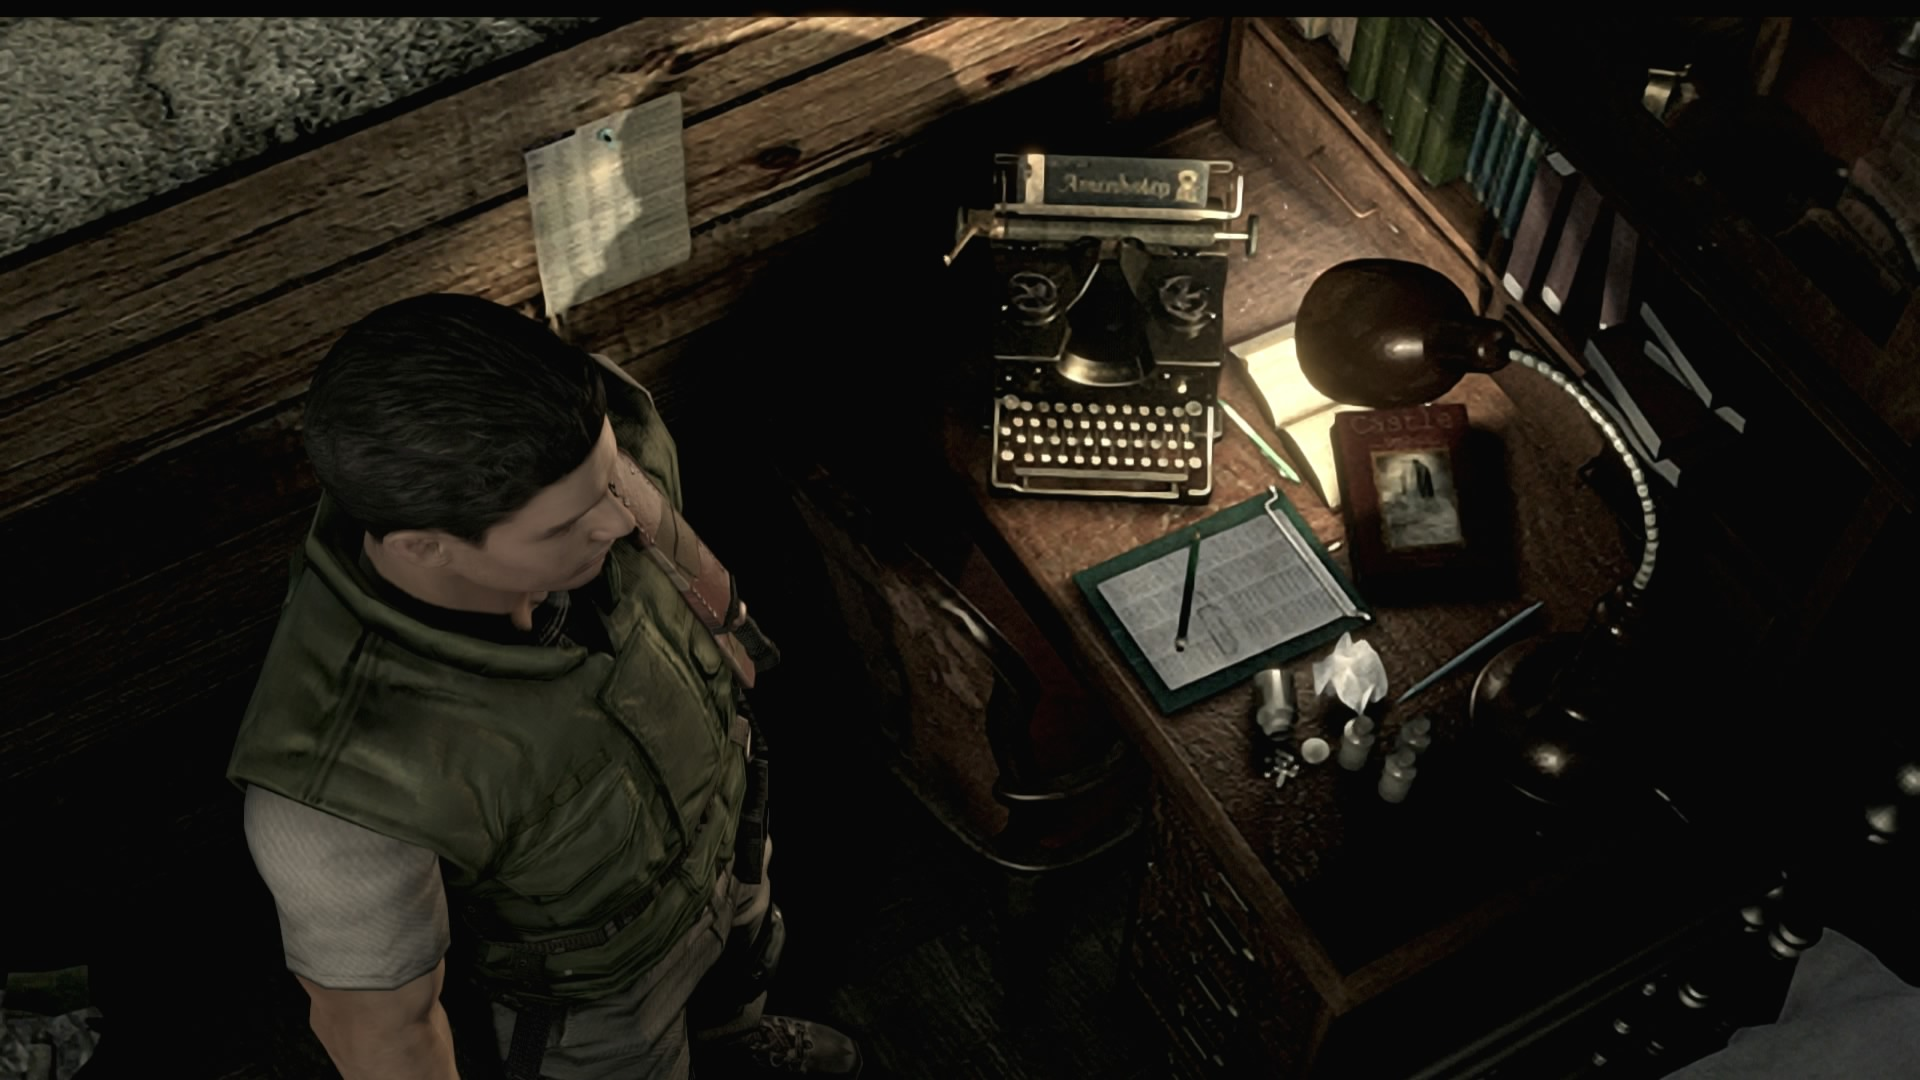 Remake of Resident Evil remake 'wouldn't be laughable', says Capcom | PC Gamer